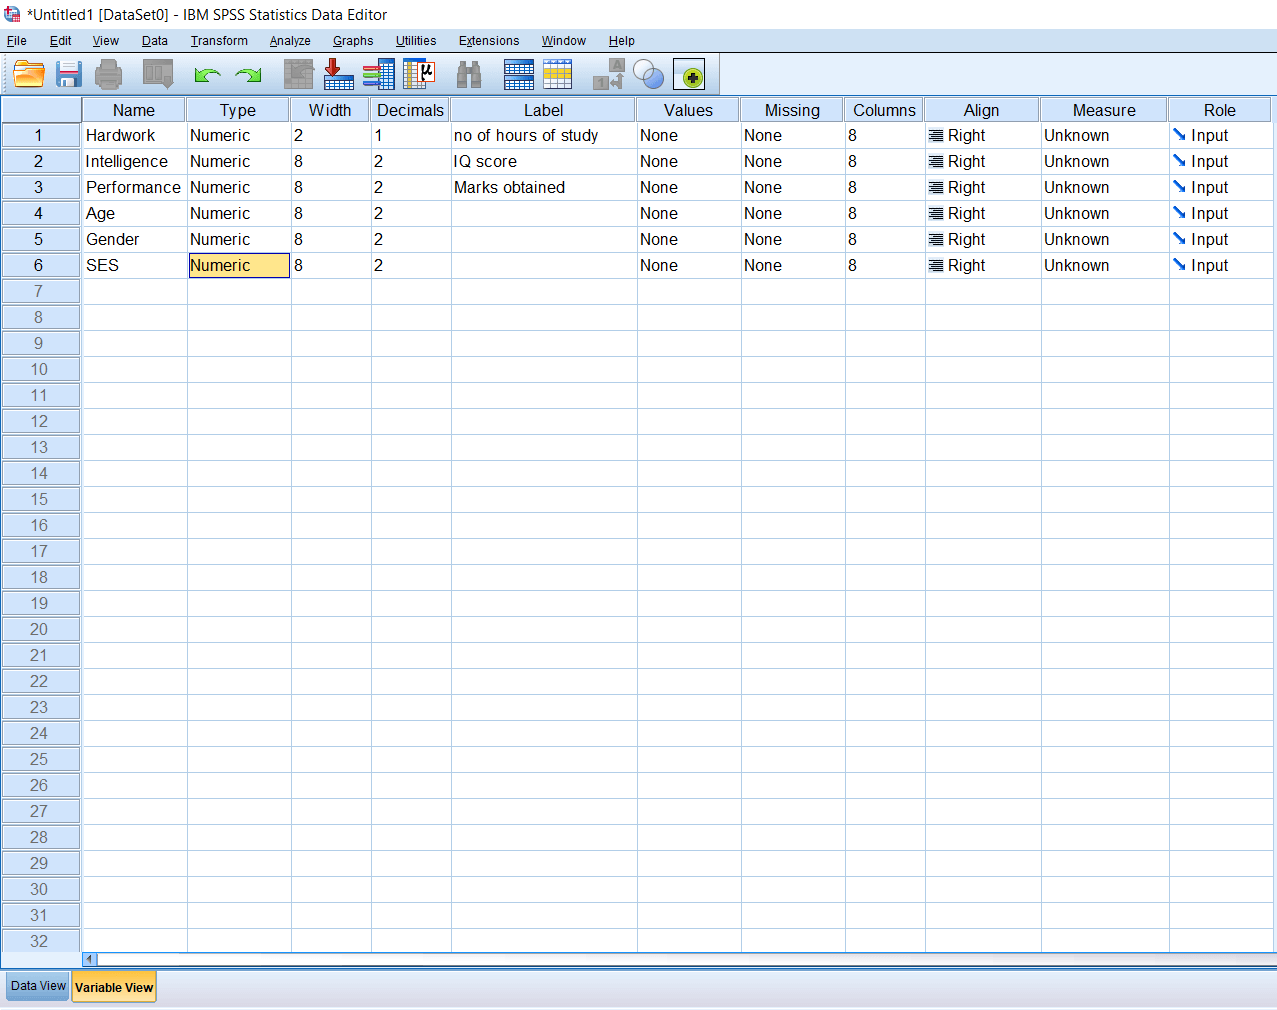 SPSS Numeric Variable